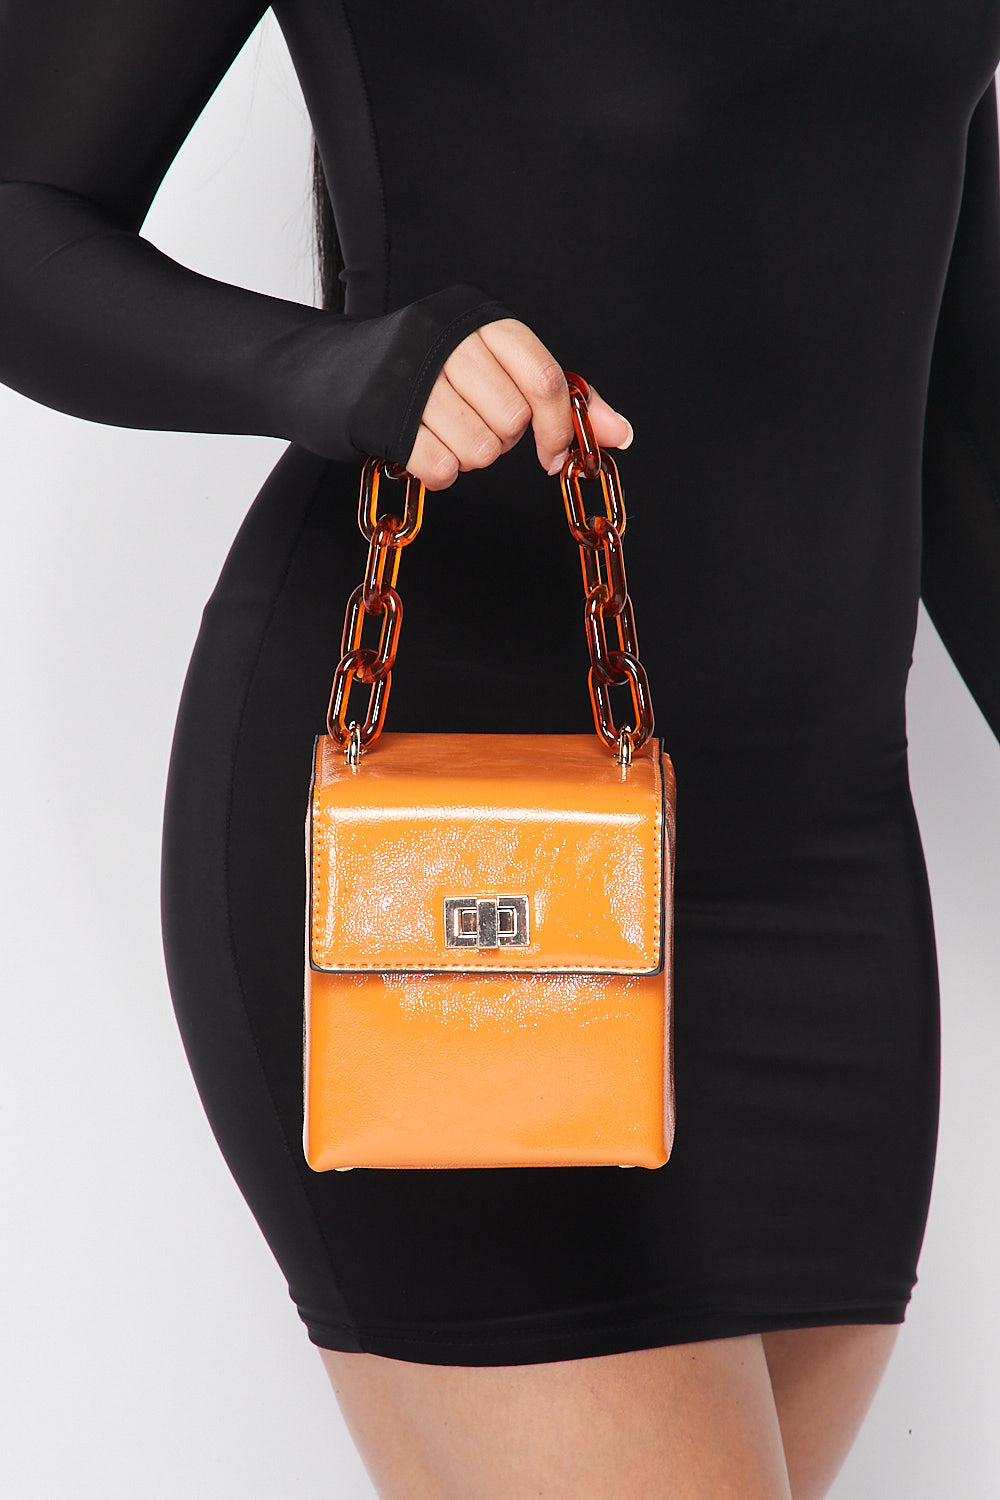 Box Purse with Acrylic Chain Handle in Orange - Fashion House USA